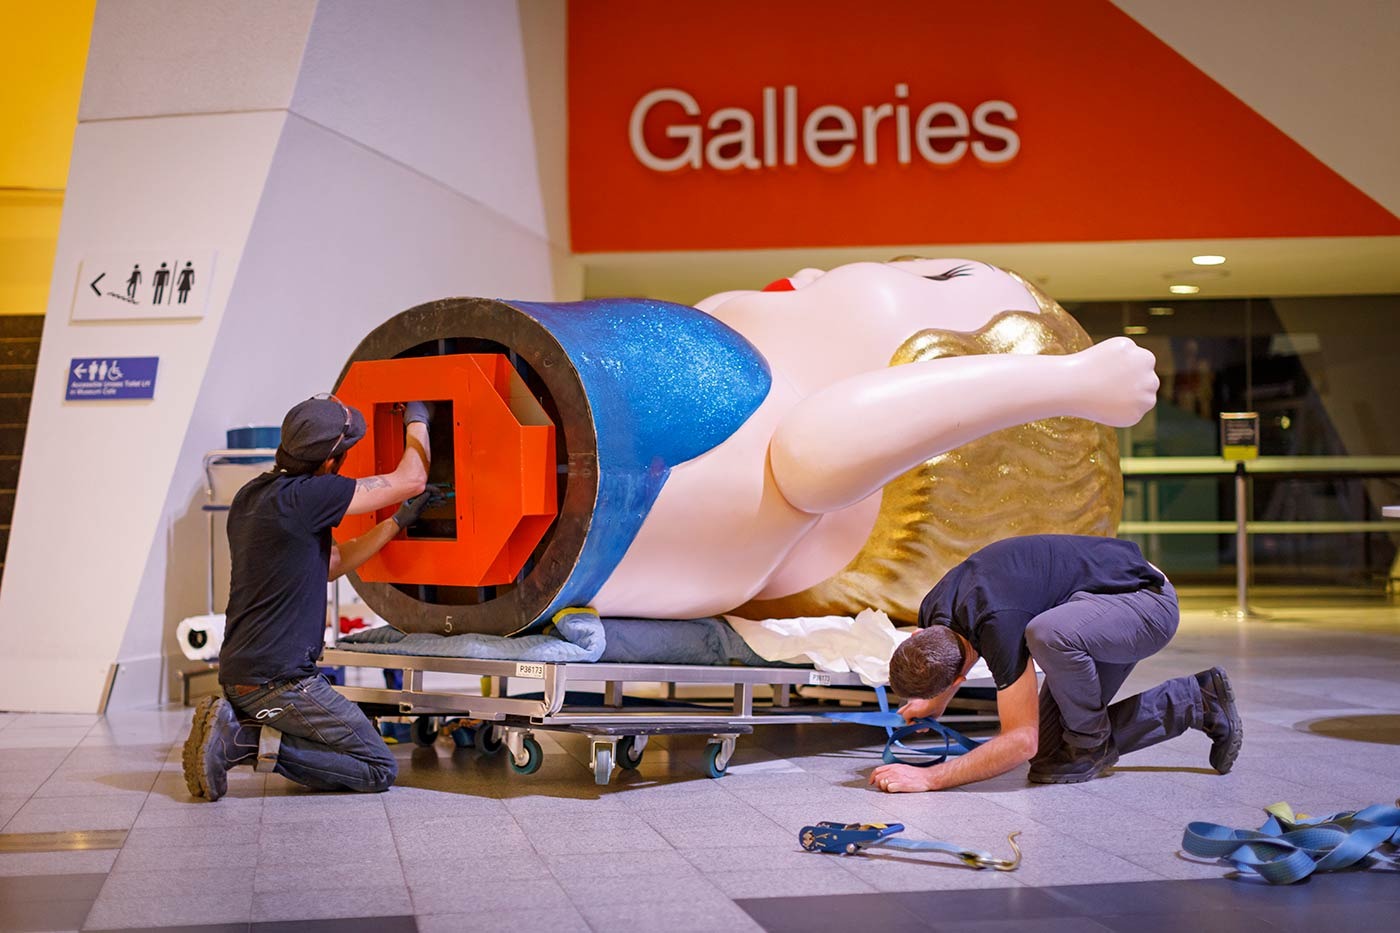 Colour photo of two men installing a large Kewpie doll in a gallery space. - click to view larger image